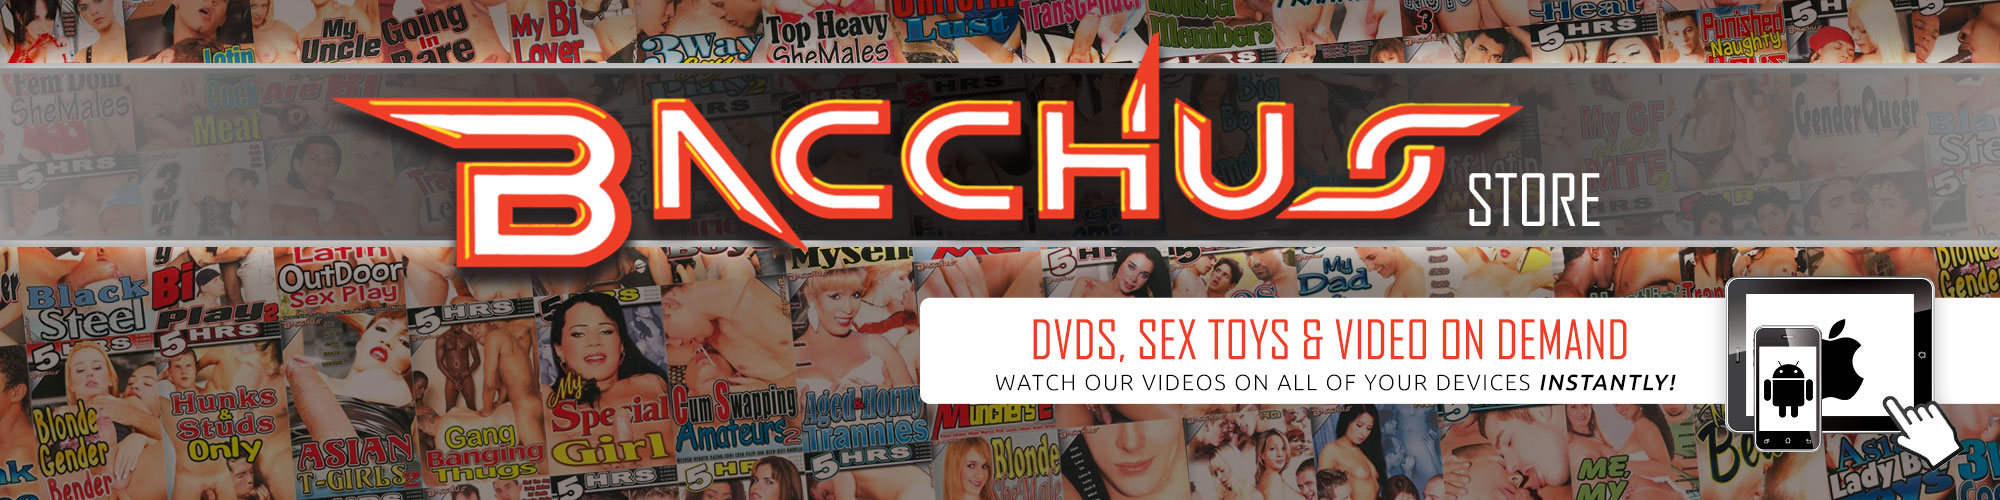 Bacchus  DVD, sex toy and Streaming Porn Video on Demand